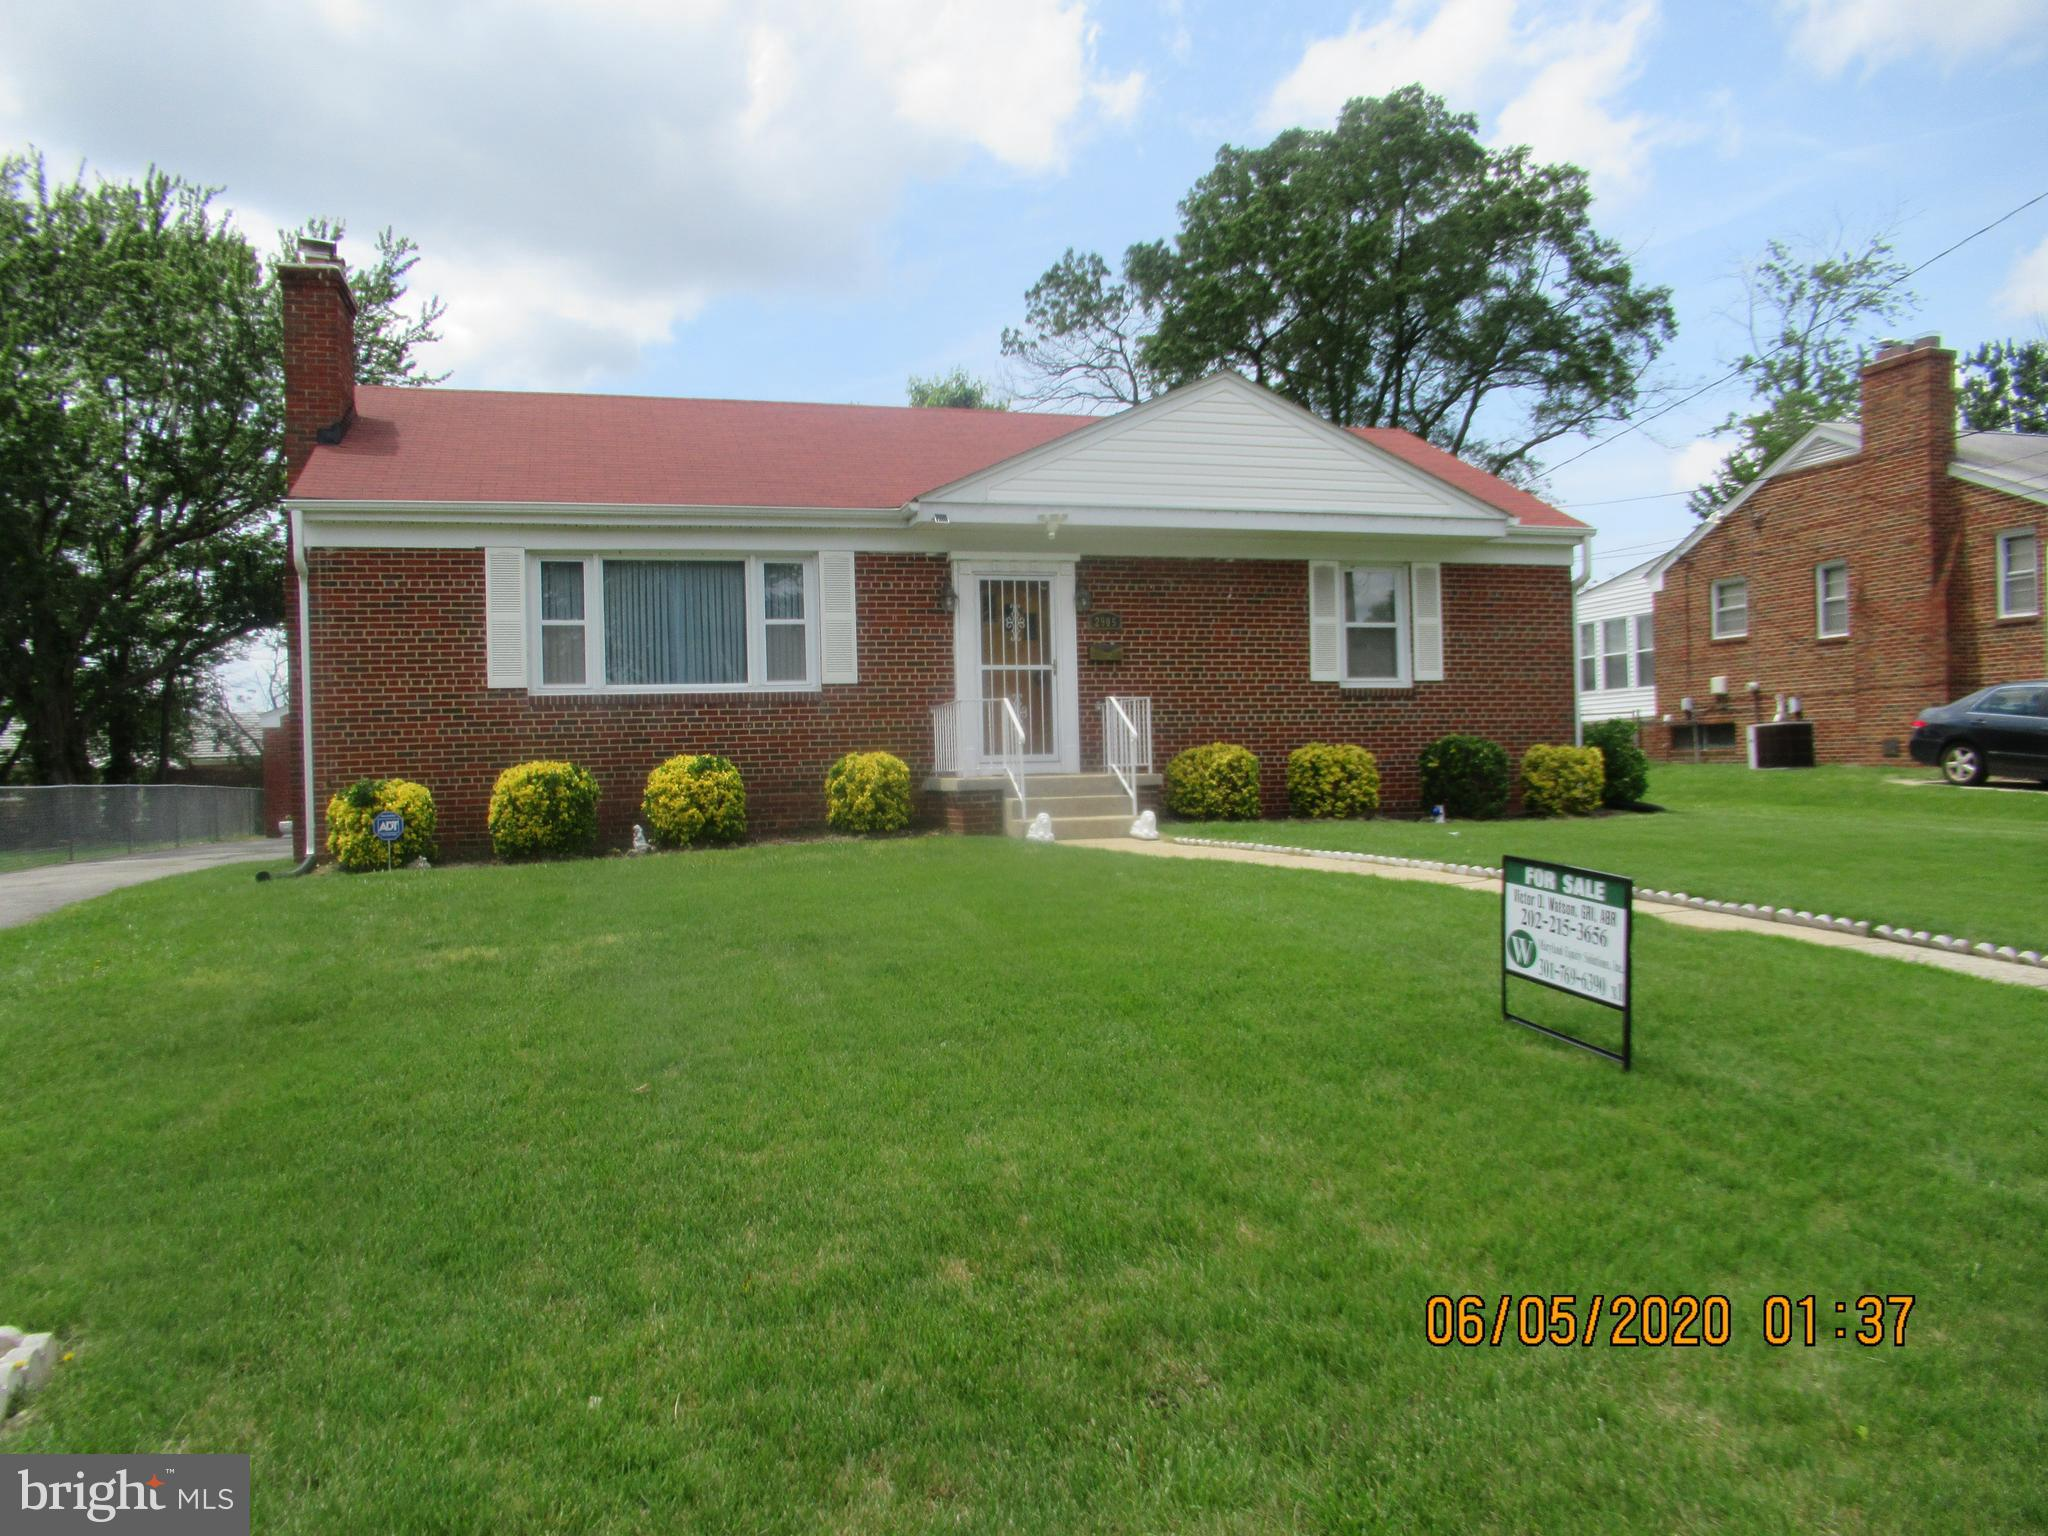 Detached Brick Rambler, two car detached garage, deck, brick patio, shed, gazebo, enclosed sun porch